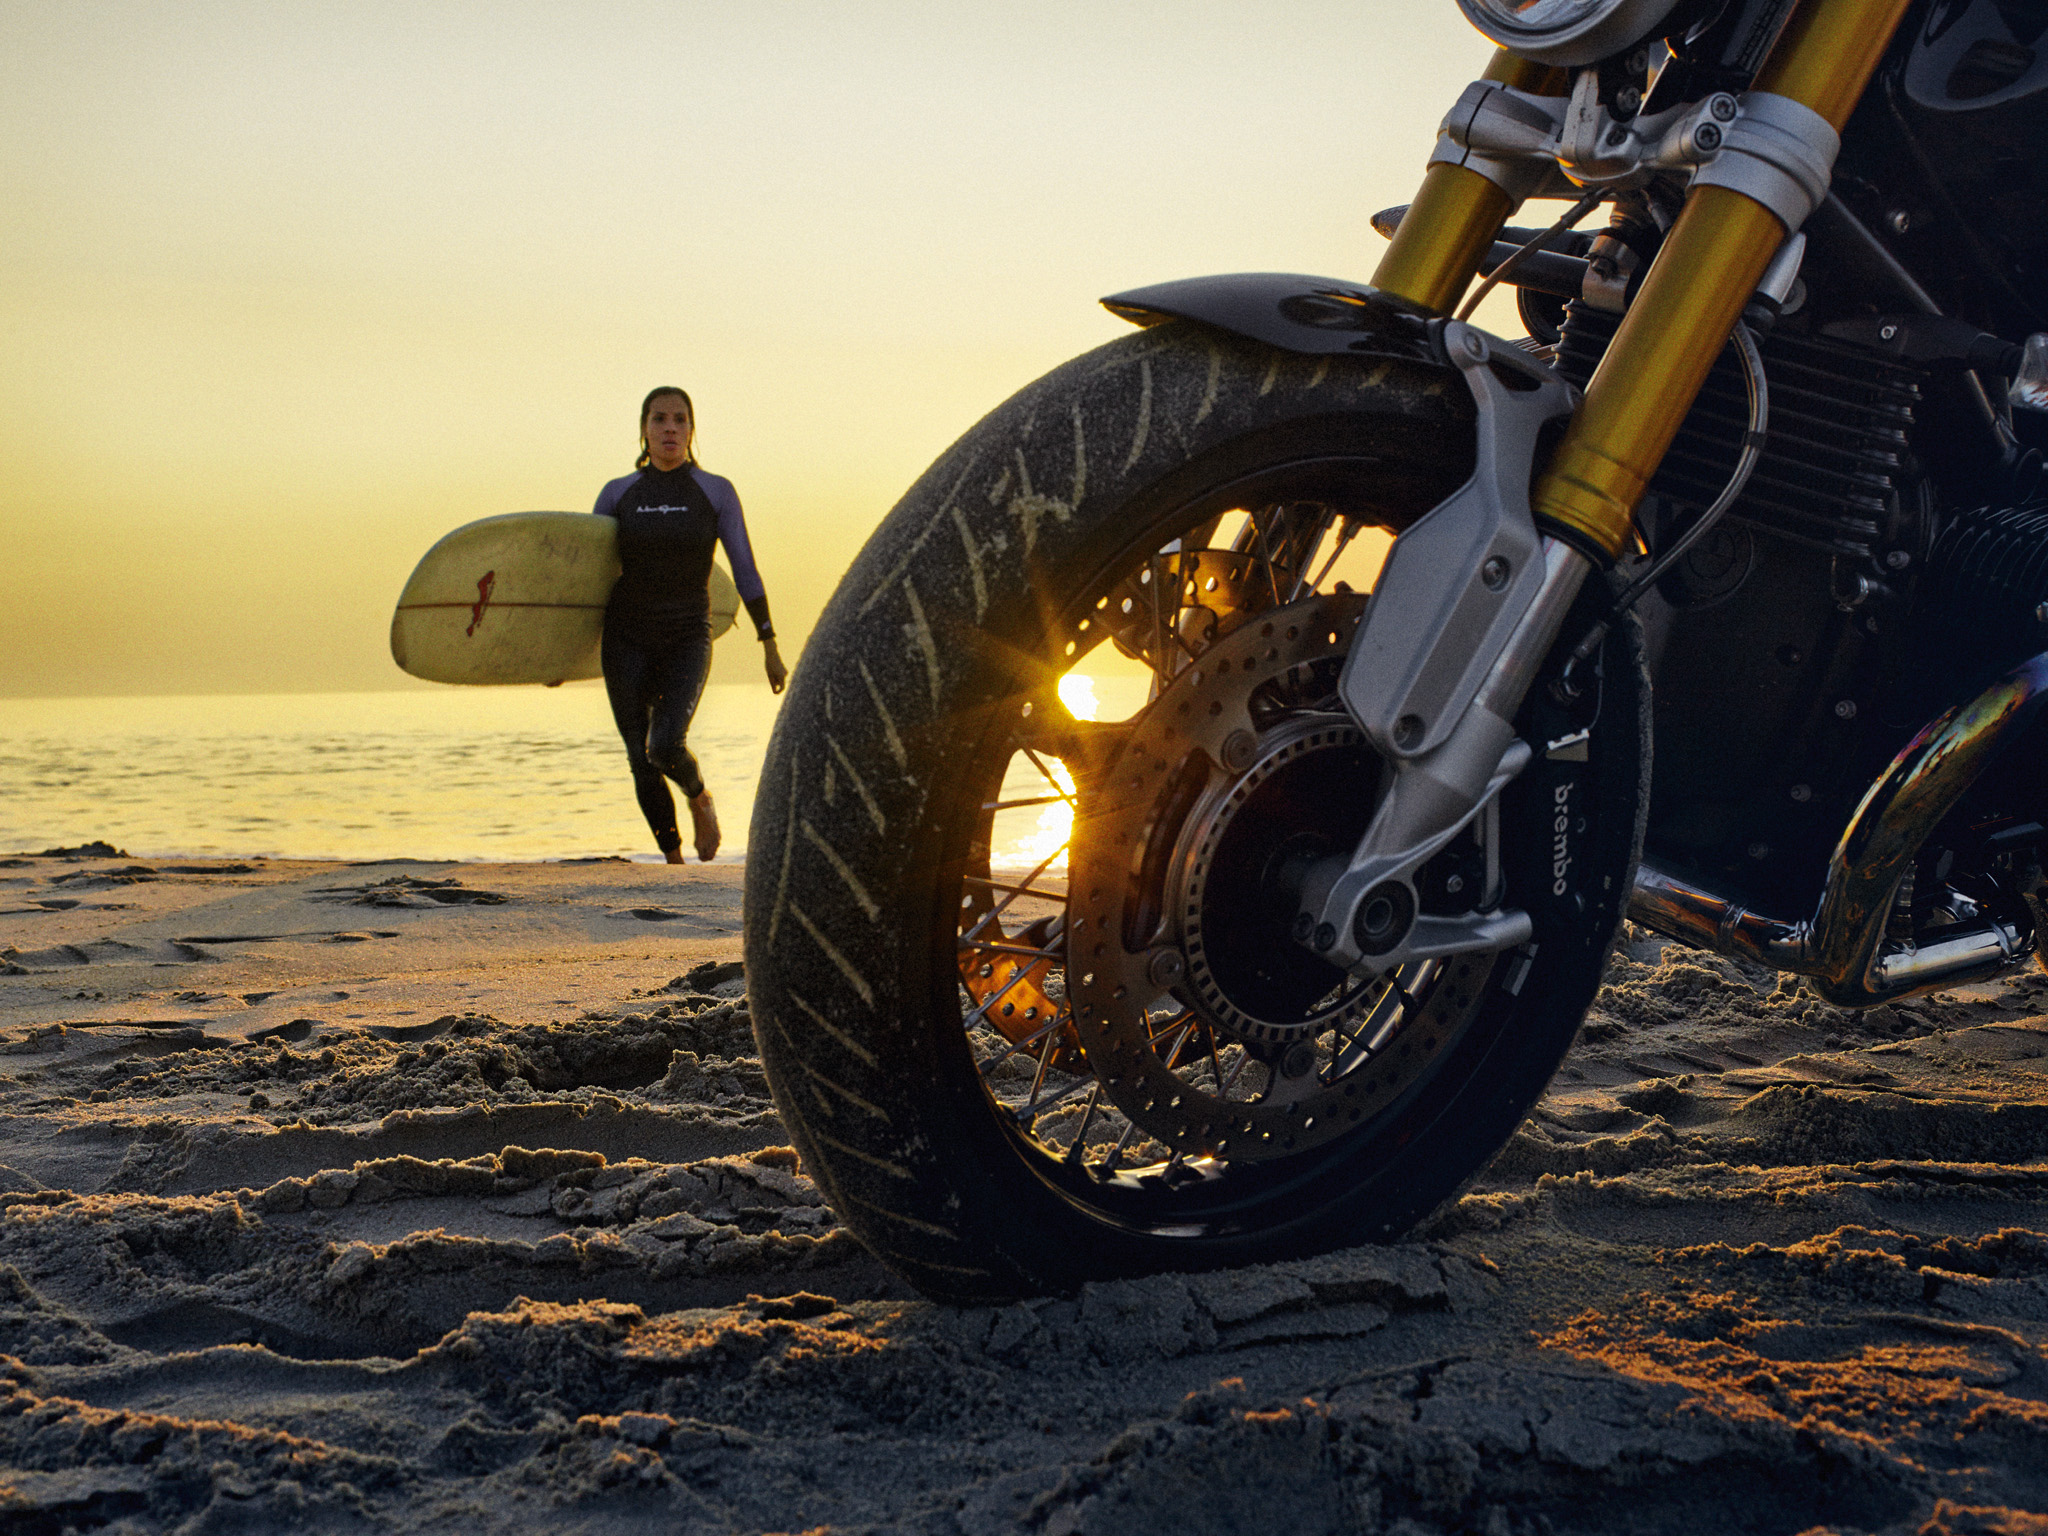 BMW Motorrad | Photographer Kristina Fender | Agency VCCP Berlin